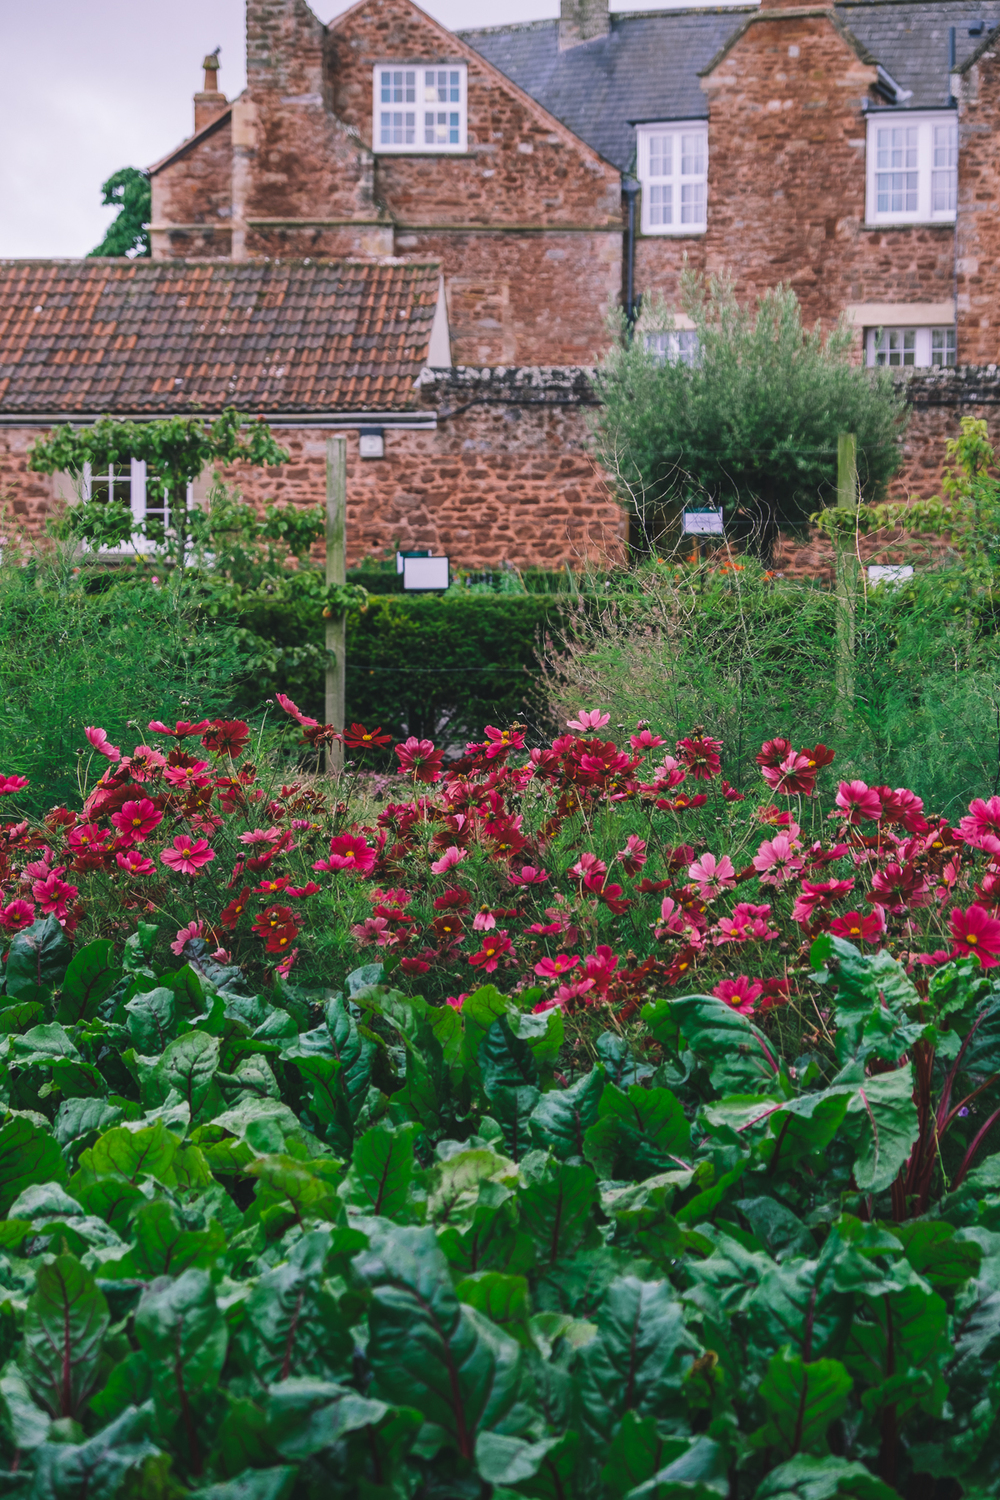 The Walled Gardens of Cannington, Somerset